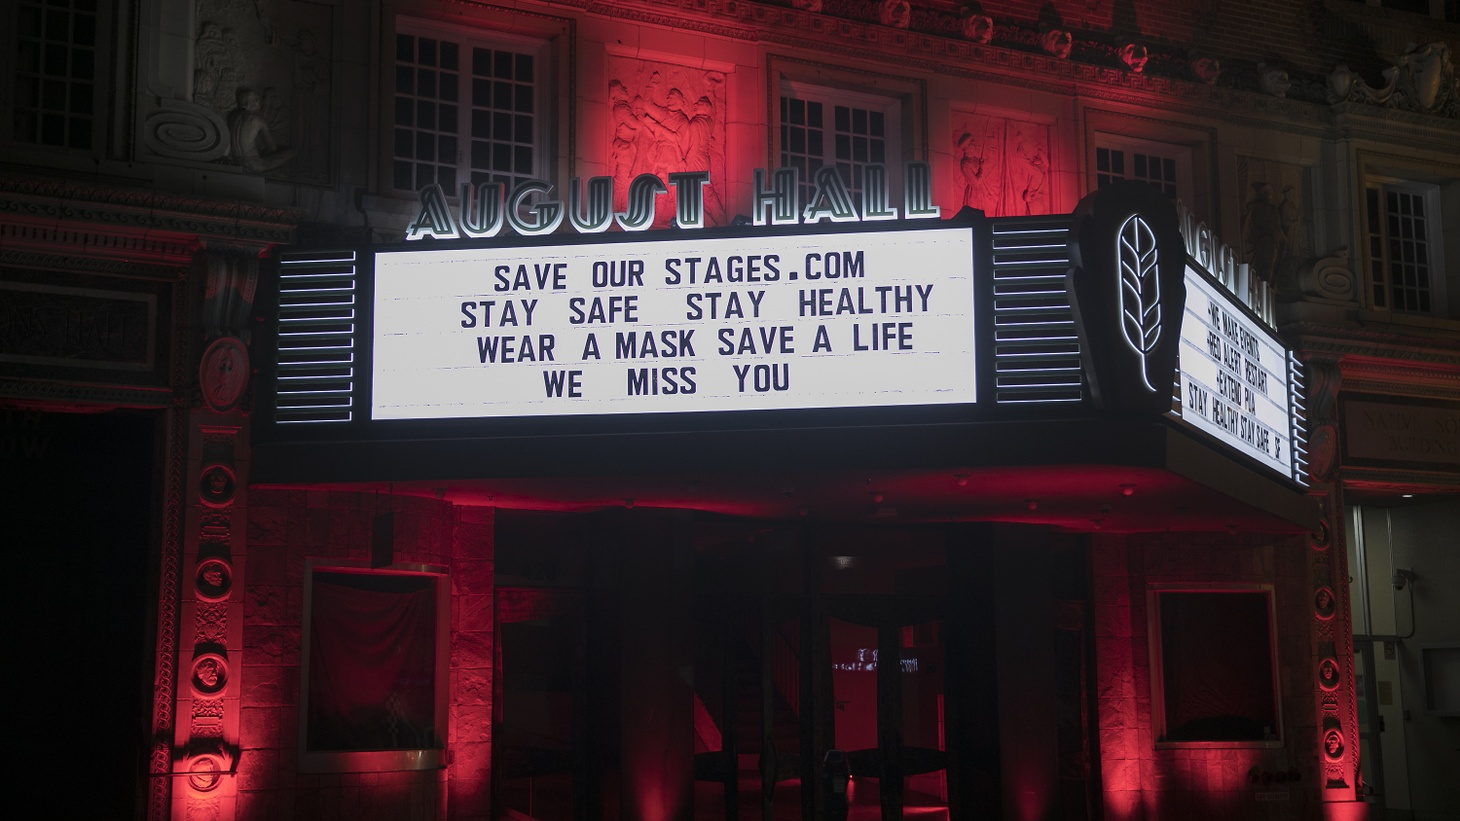 """August Hall in San Francisco displays the sign: """"SaveOurStages.com. Stay safe, stay healthy, wear a mask, save a life, we miss you."""""""